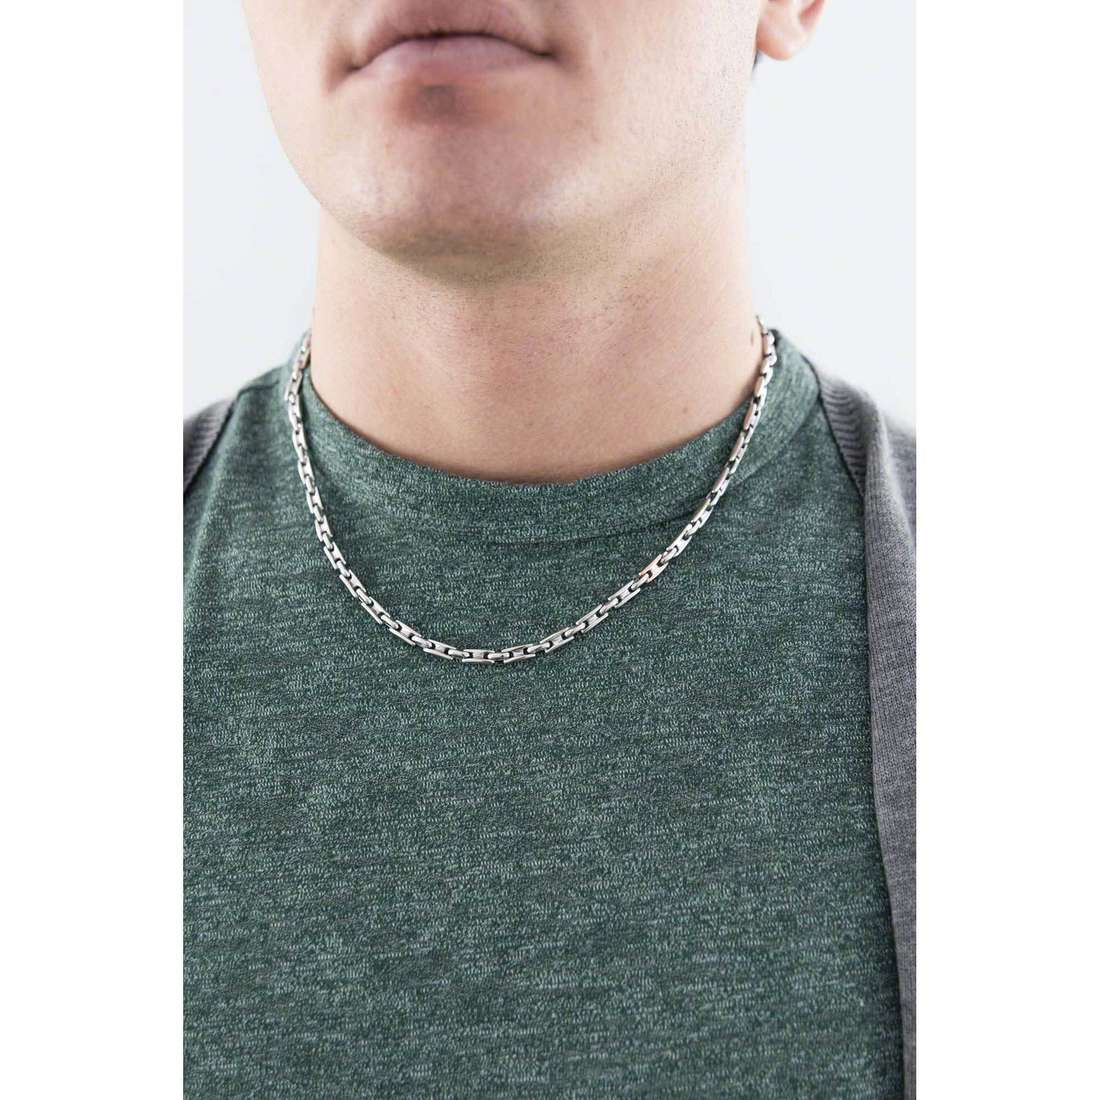 Bliss necklaces Oxford man 20064159 indosso